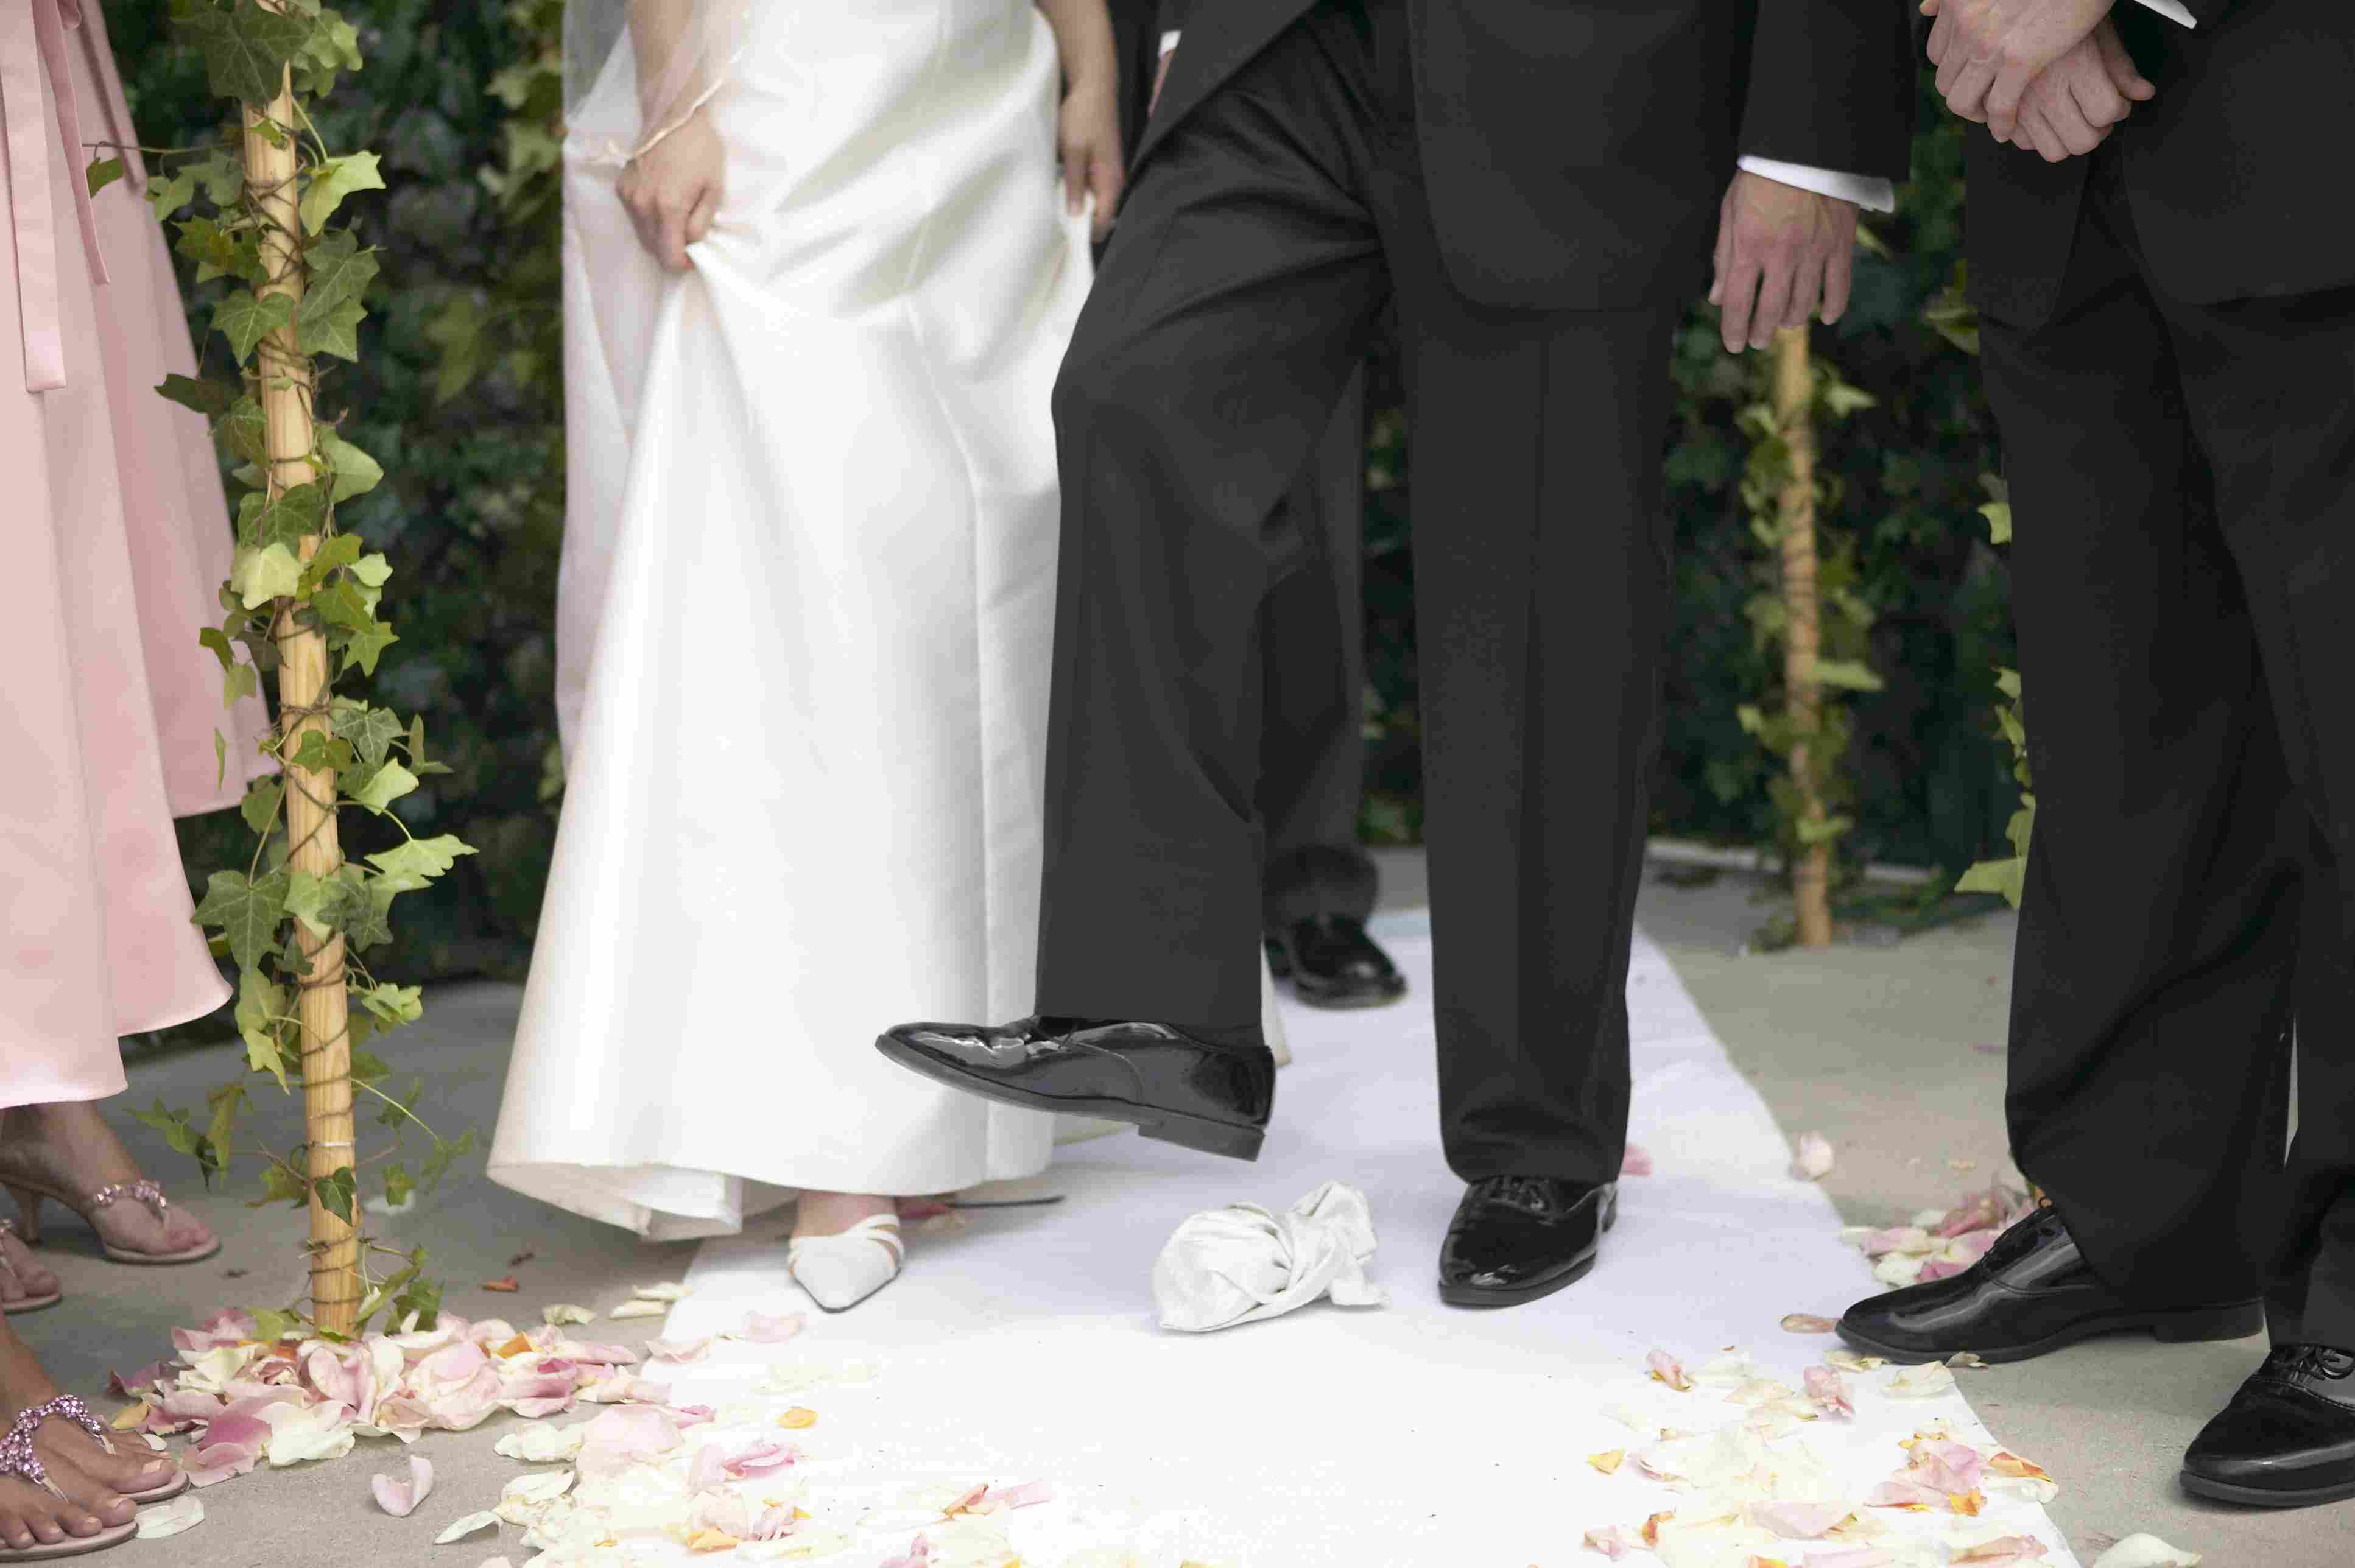 Groom stepping on glass during Jewish wedding ceremony